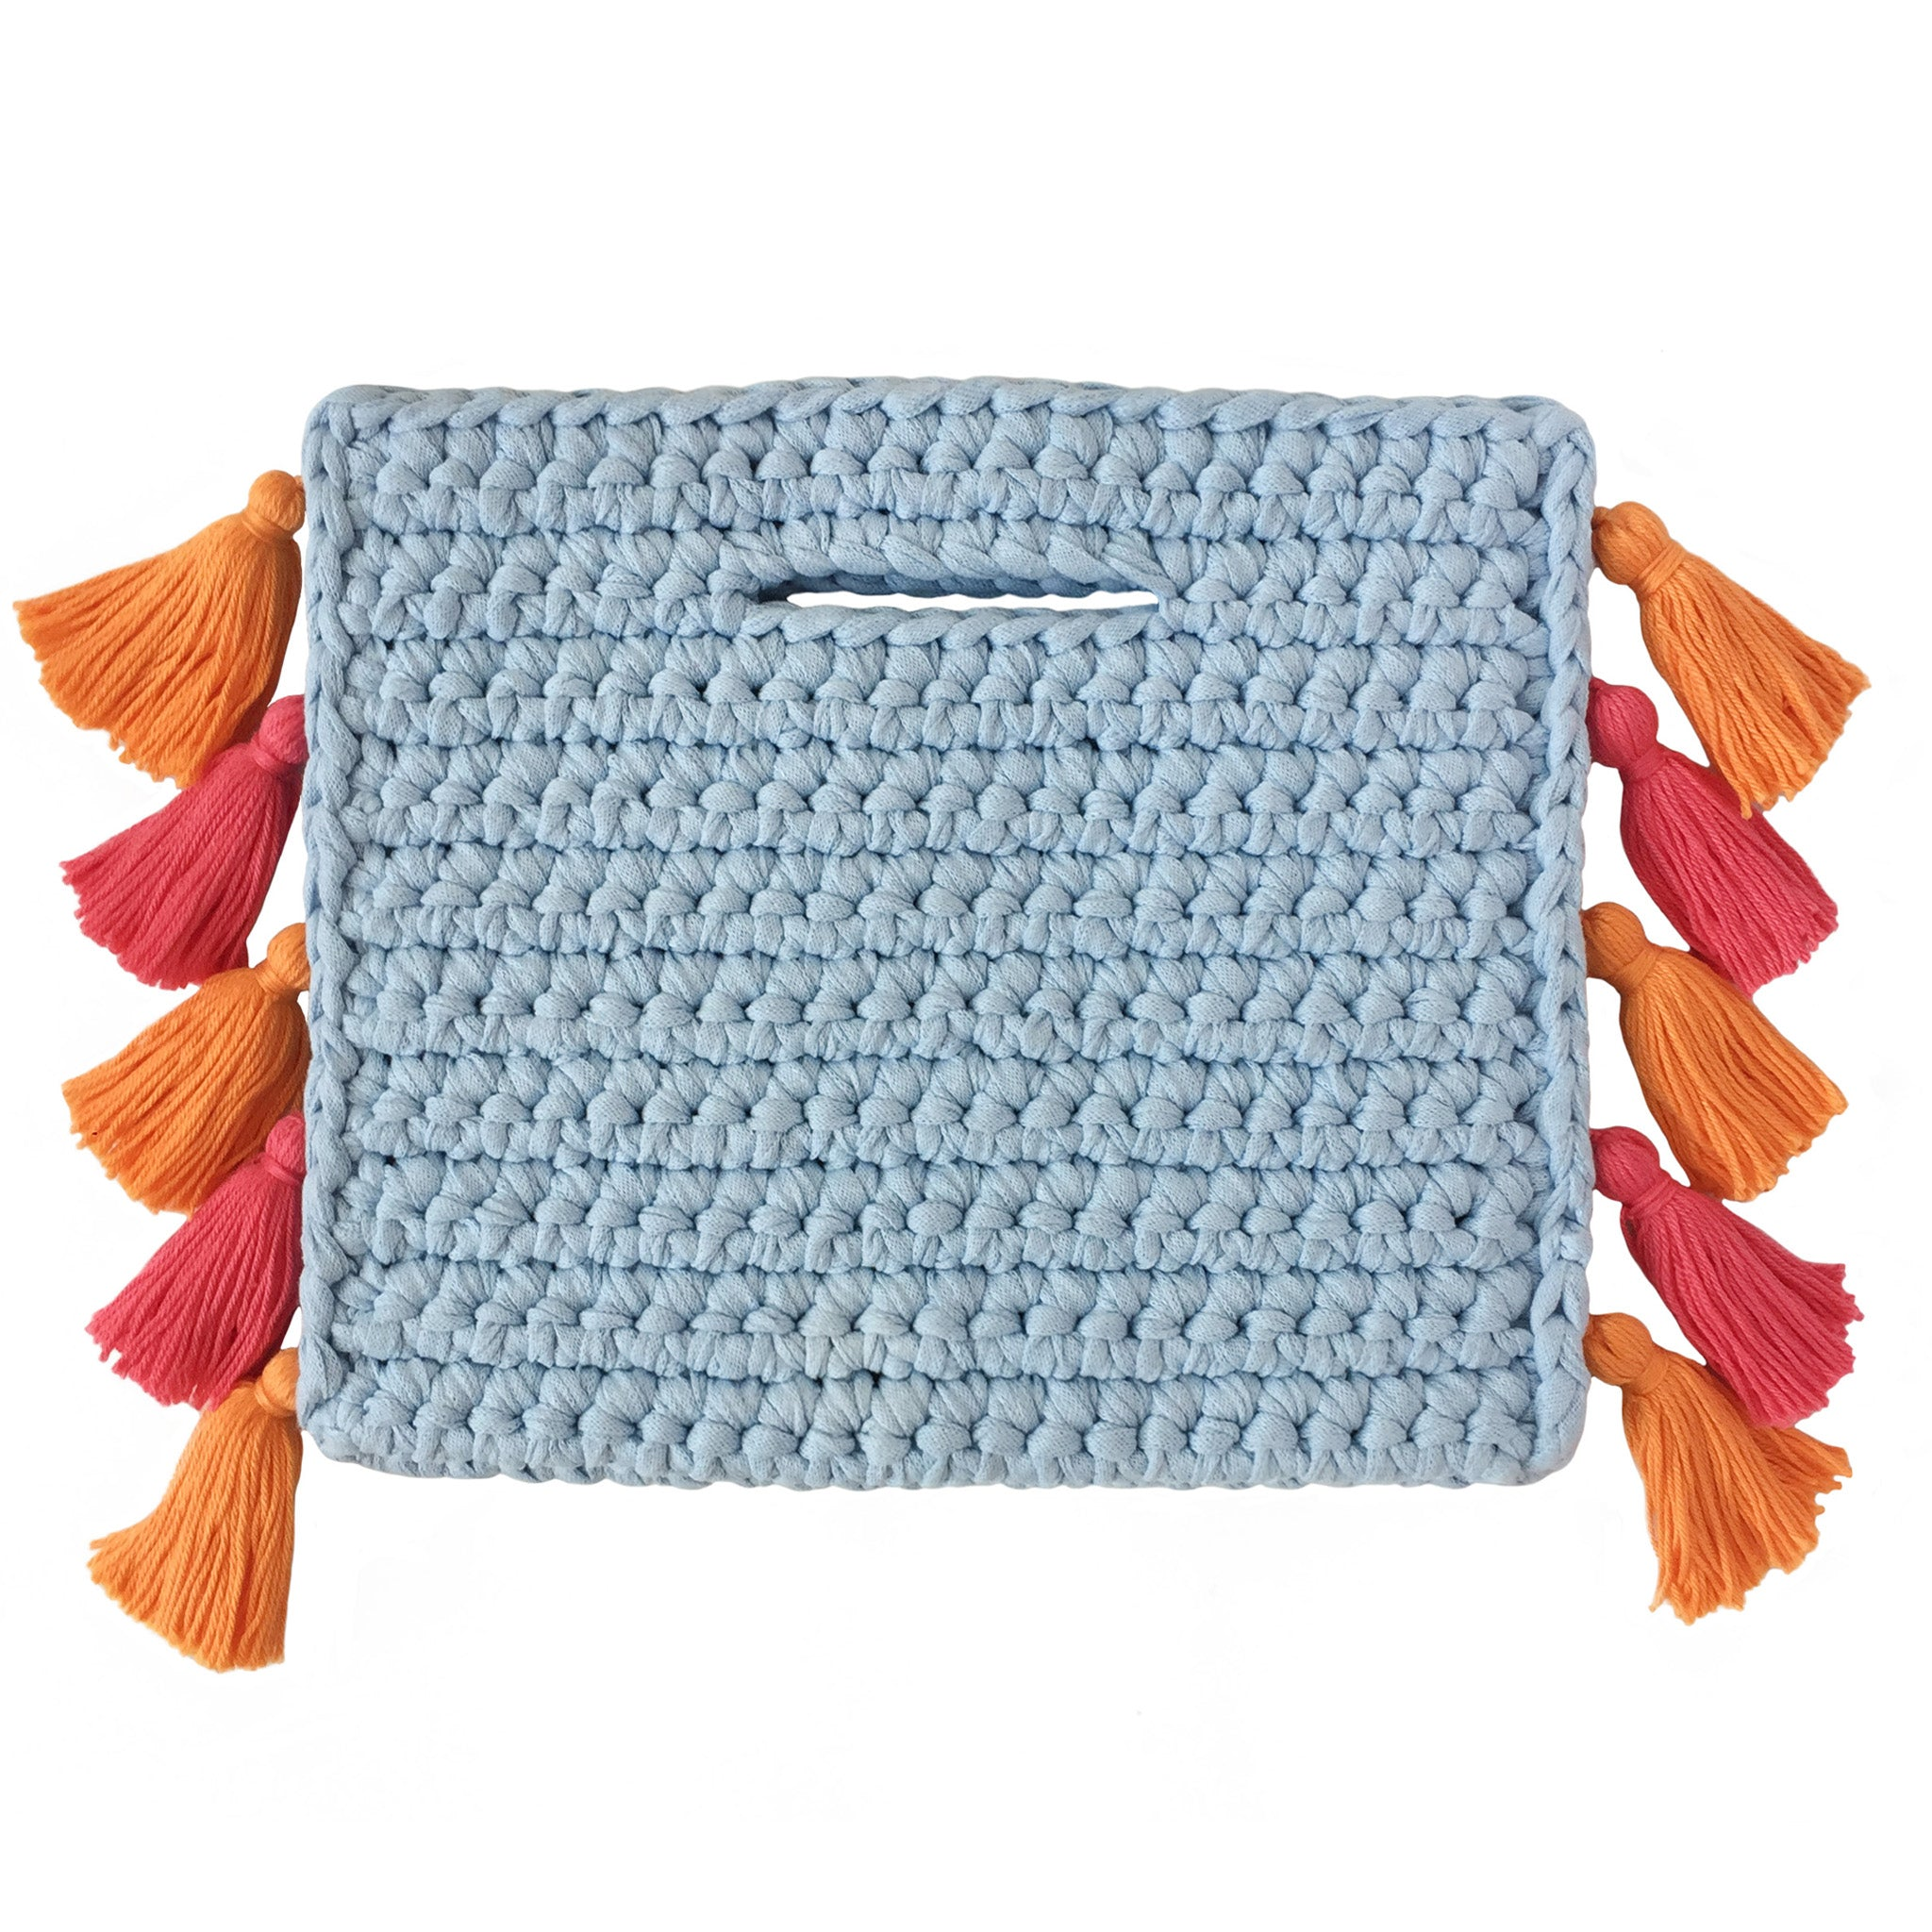 Binge Knitting Clutch Pom Poms on Side